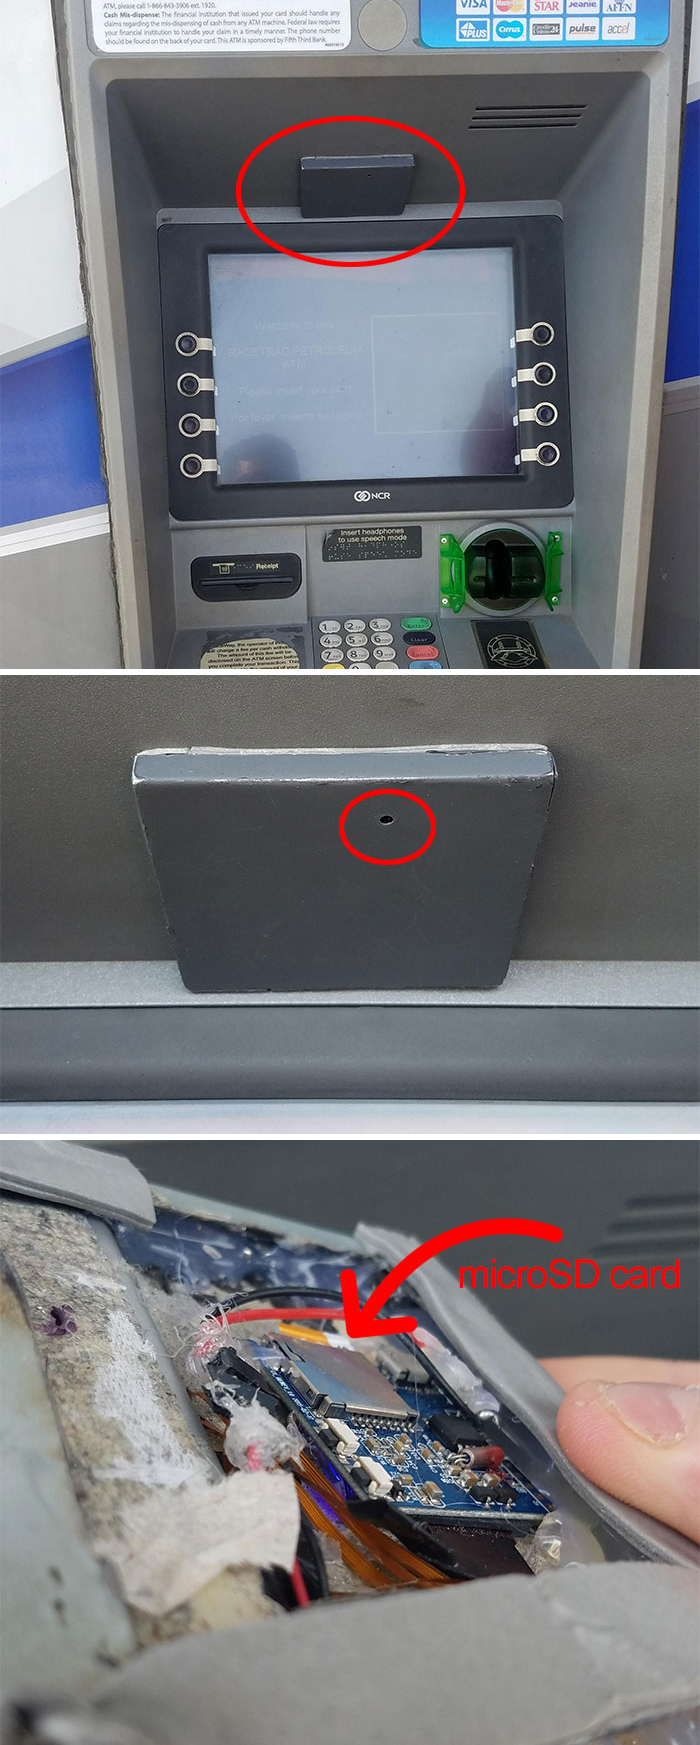 how-to-spot-atm-scam-15-594d0cae4c6e3__700